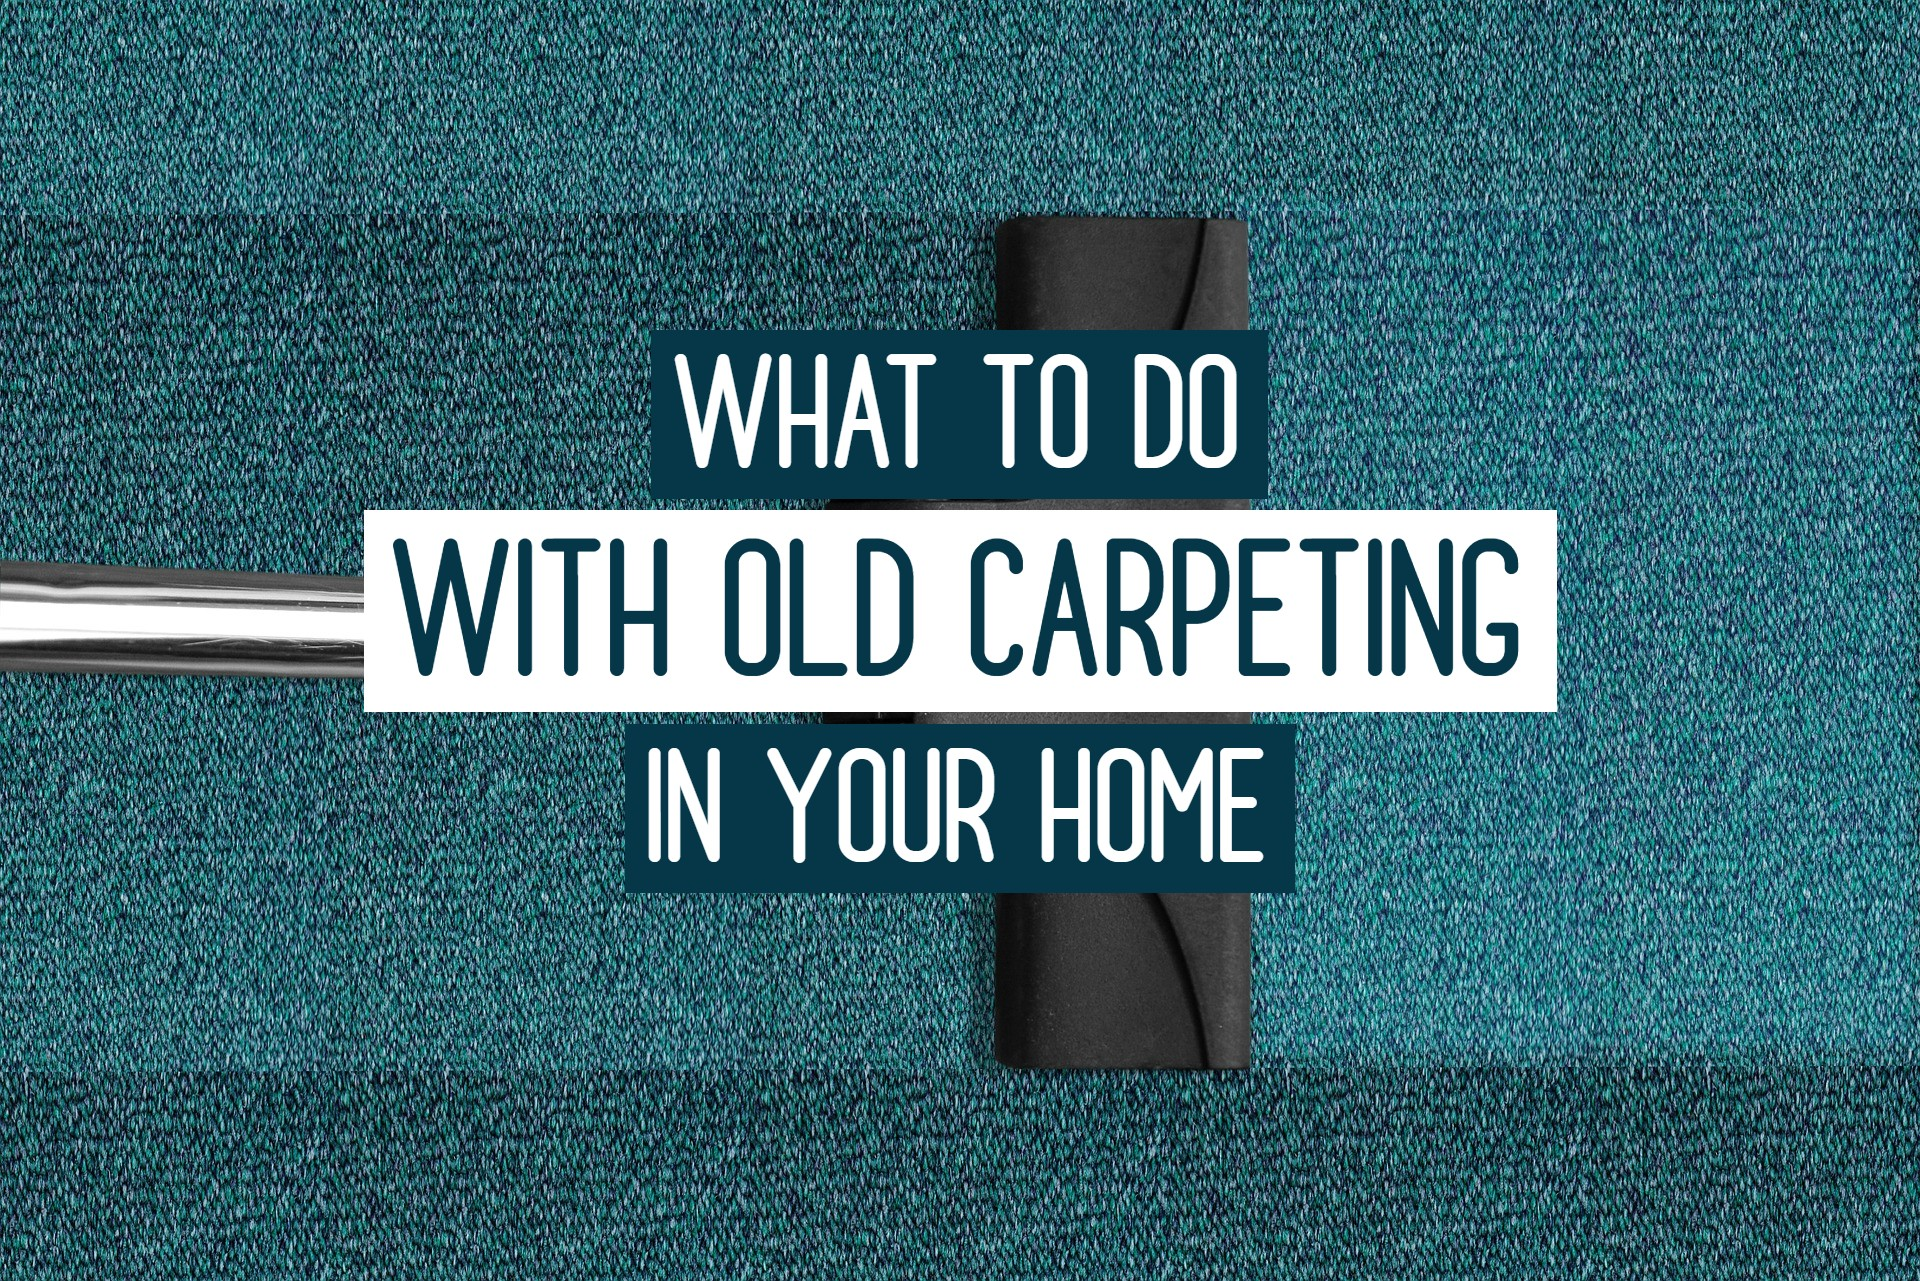 What To Do With Old Carpeting In Your Home